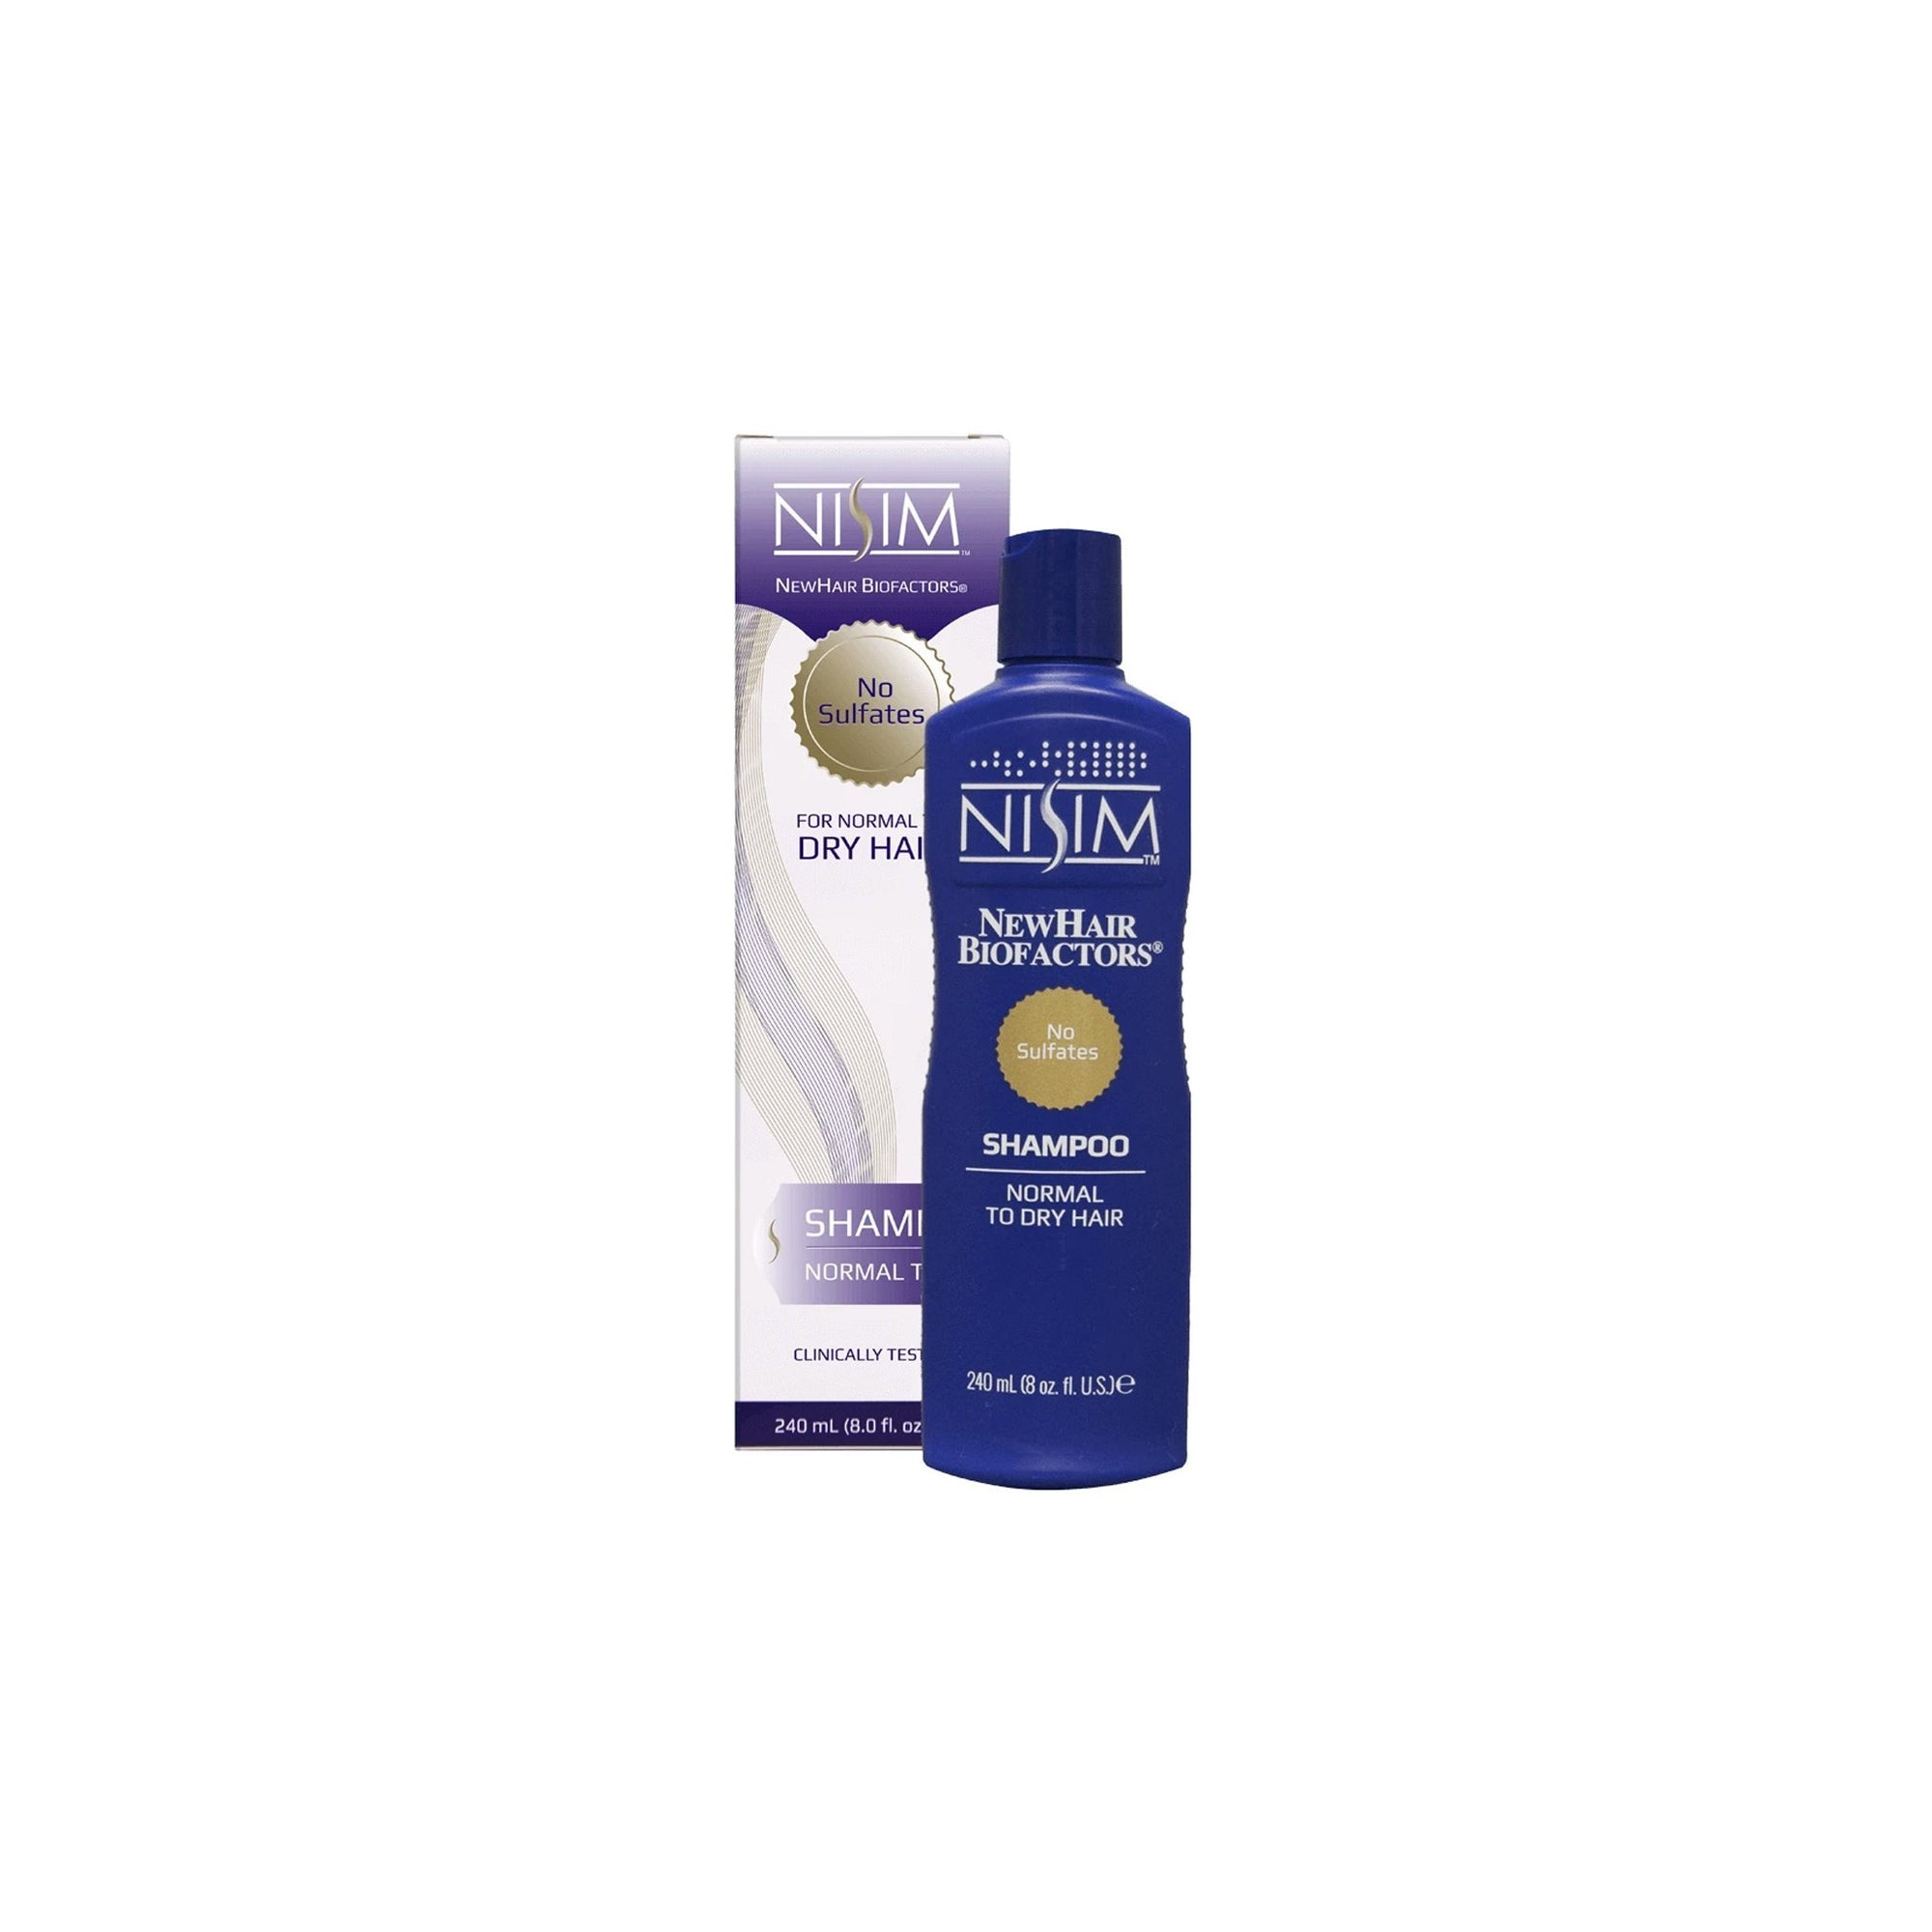 Nisim Shampoo for Normal to Dry Hair 240ml